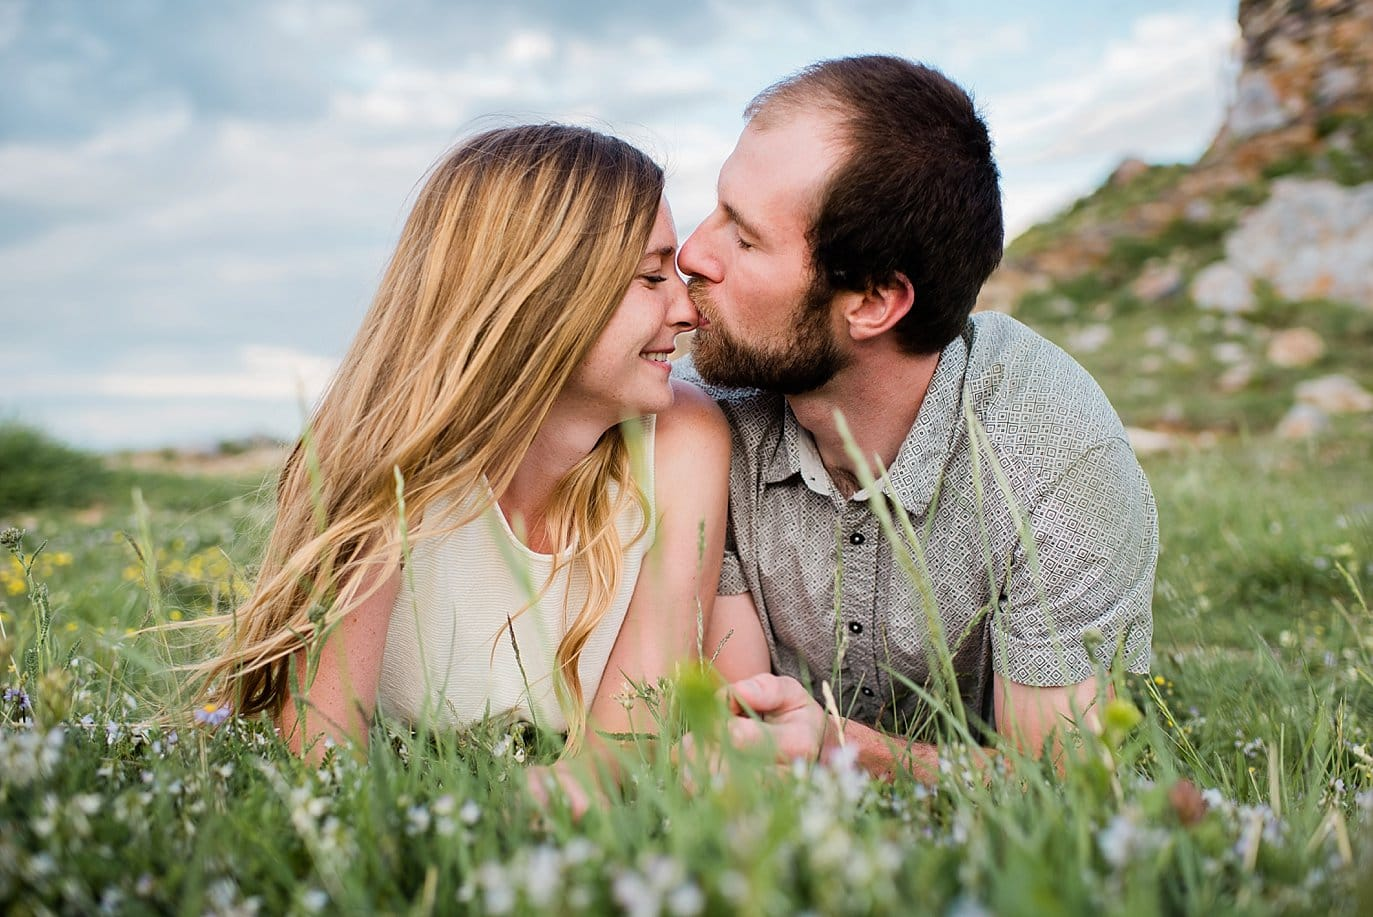 cute nose kiss during engagement session photo